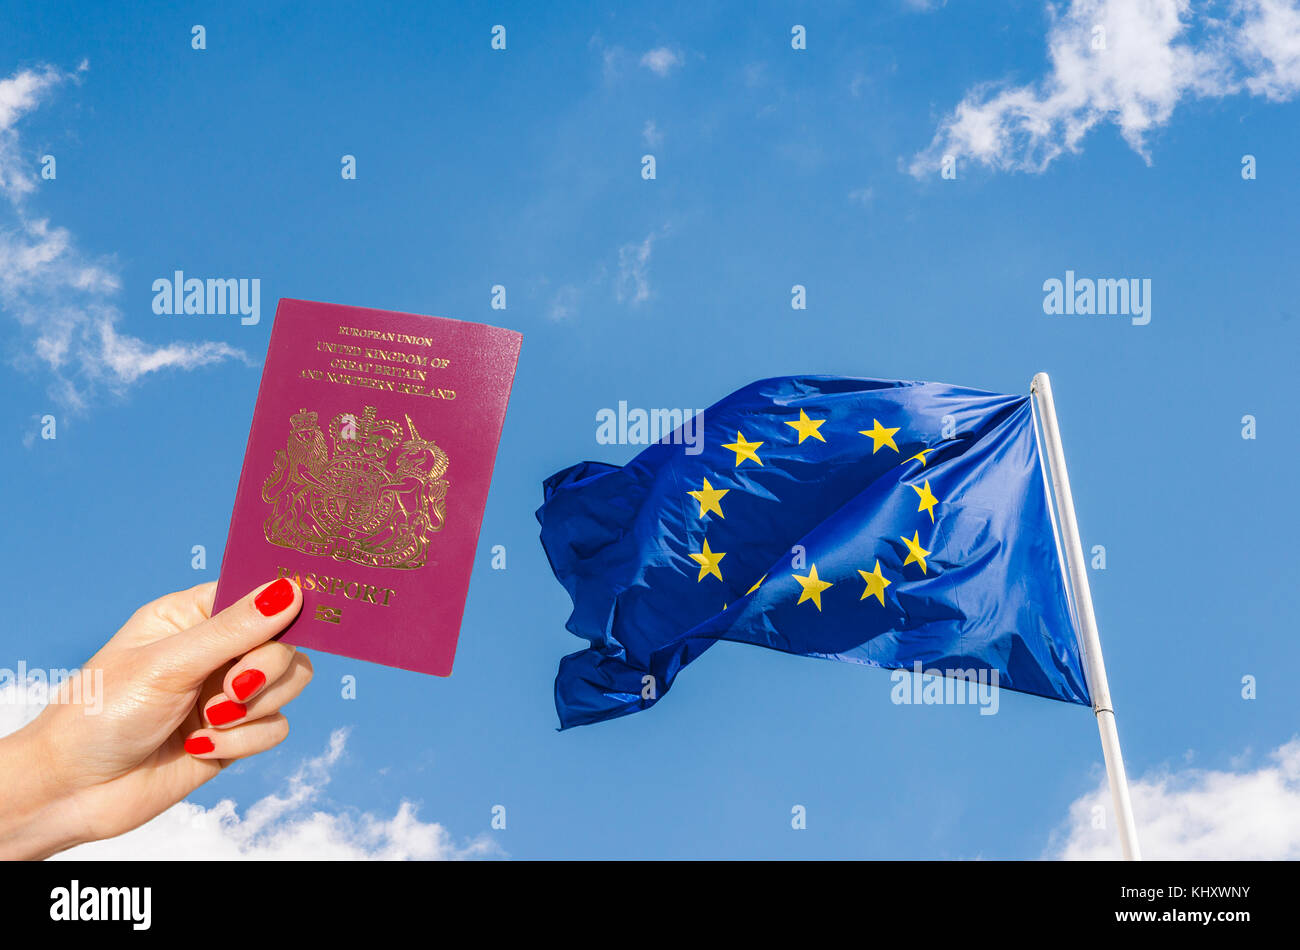 European Union (EU) flag against a blue sky with digital composite of woman holding a UK passport - UK is set to Stock Photo